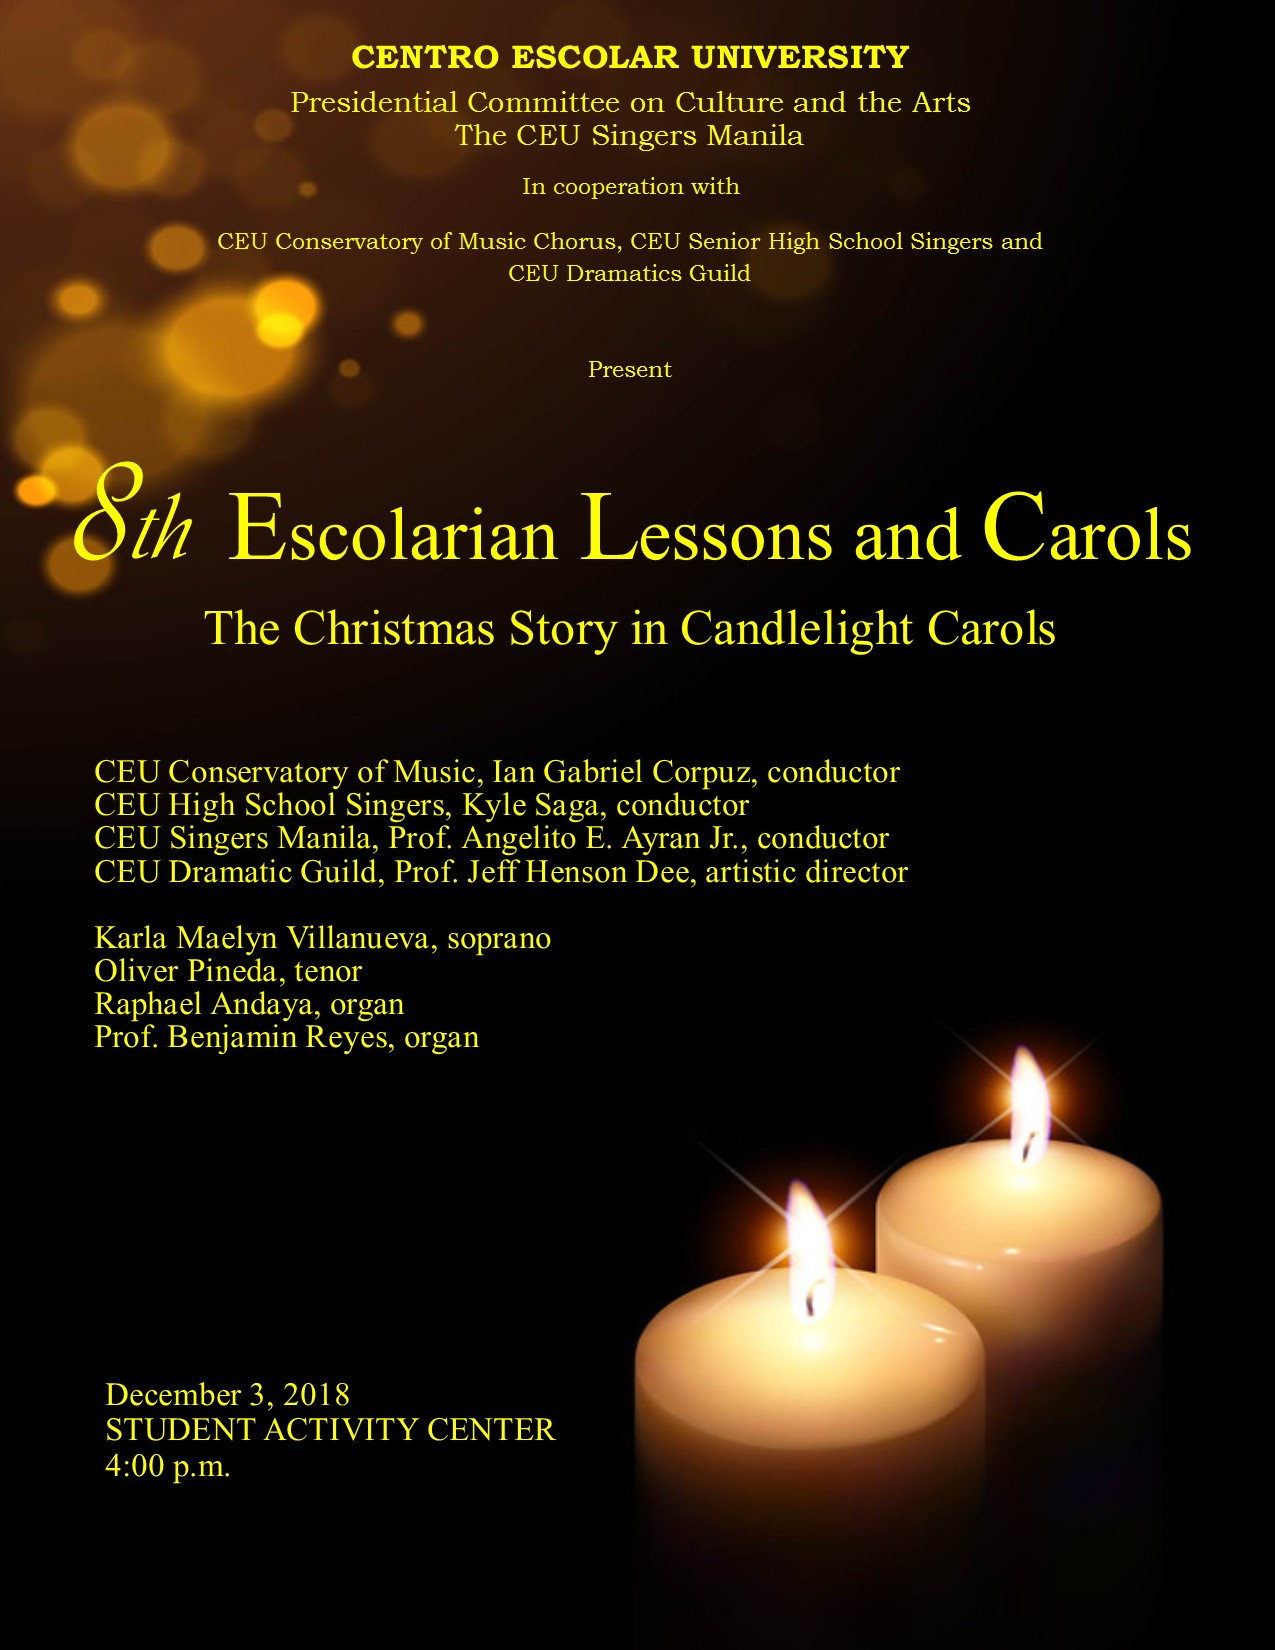 8th Escolarian Lessons and Carols